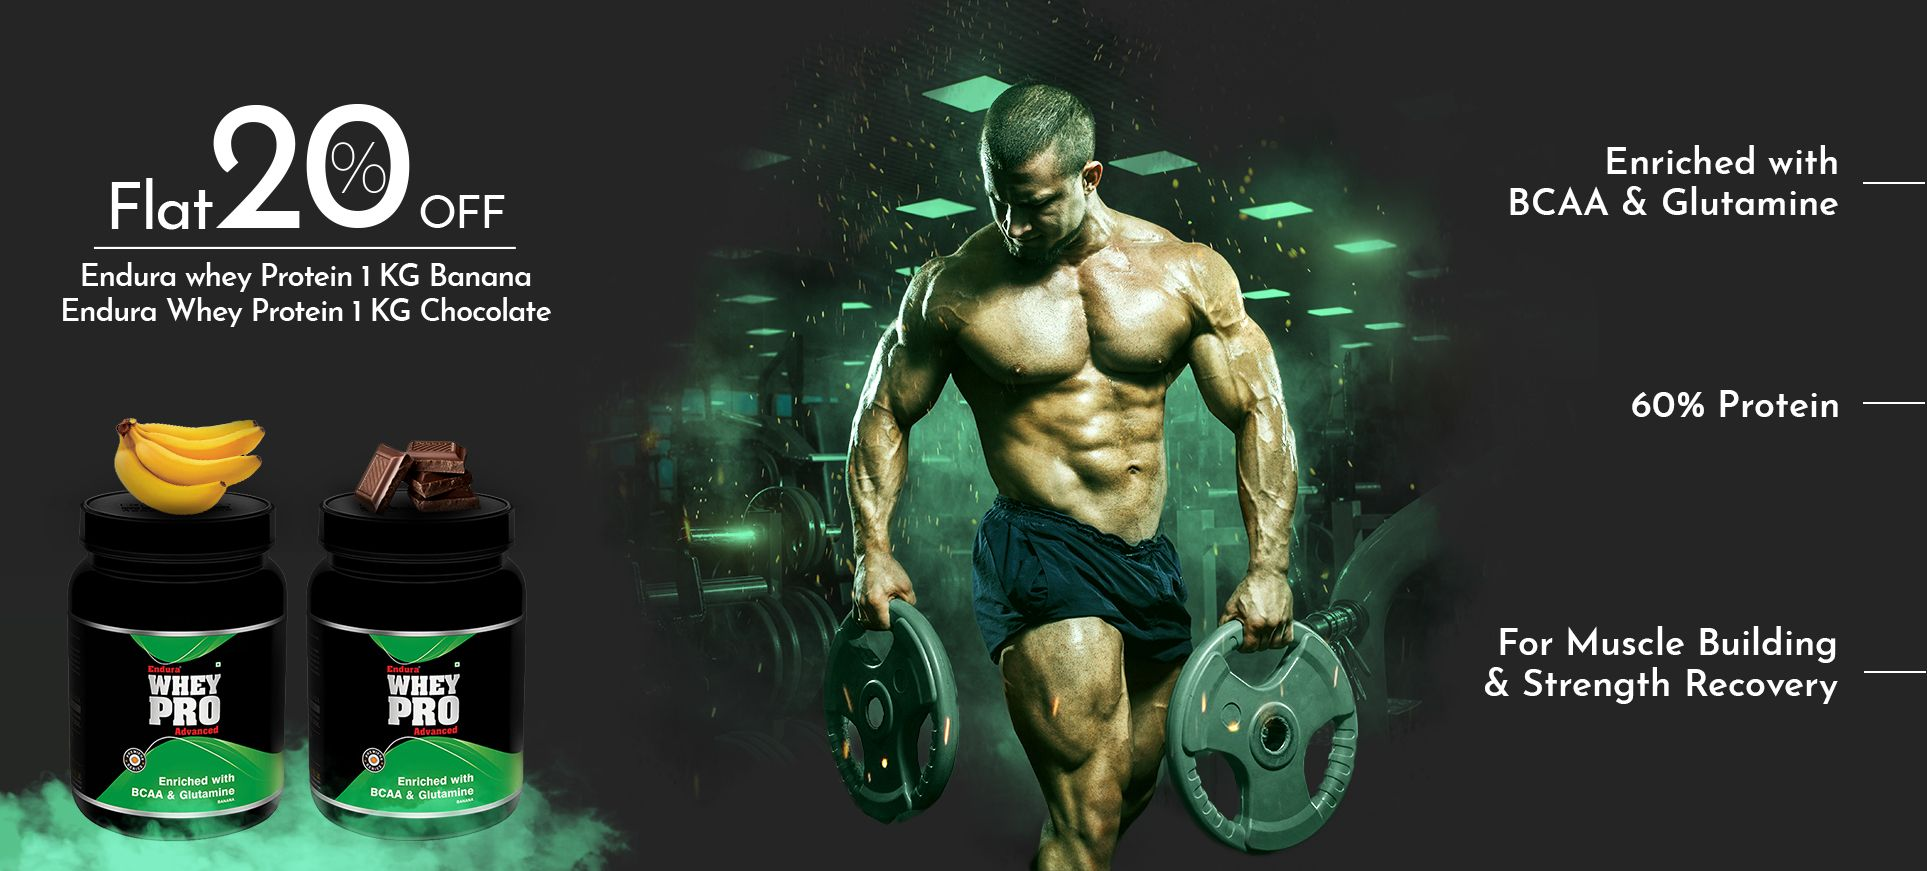 whey-banner-option-2